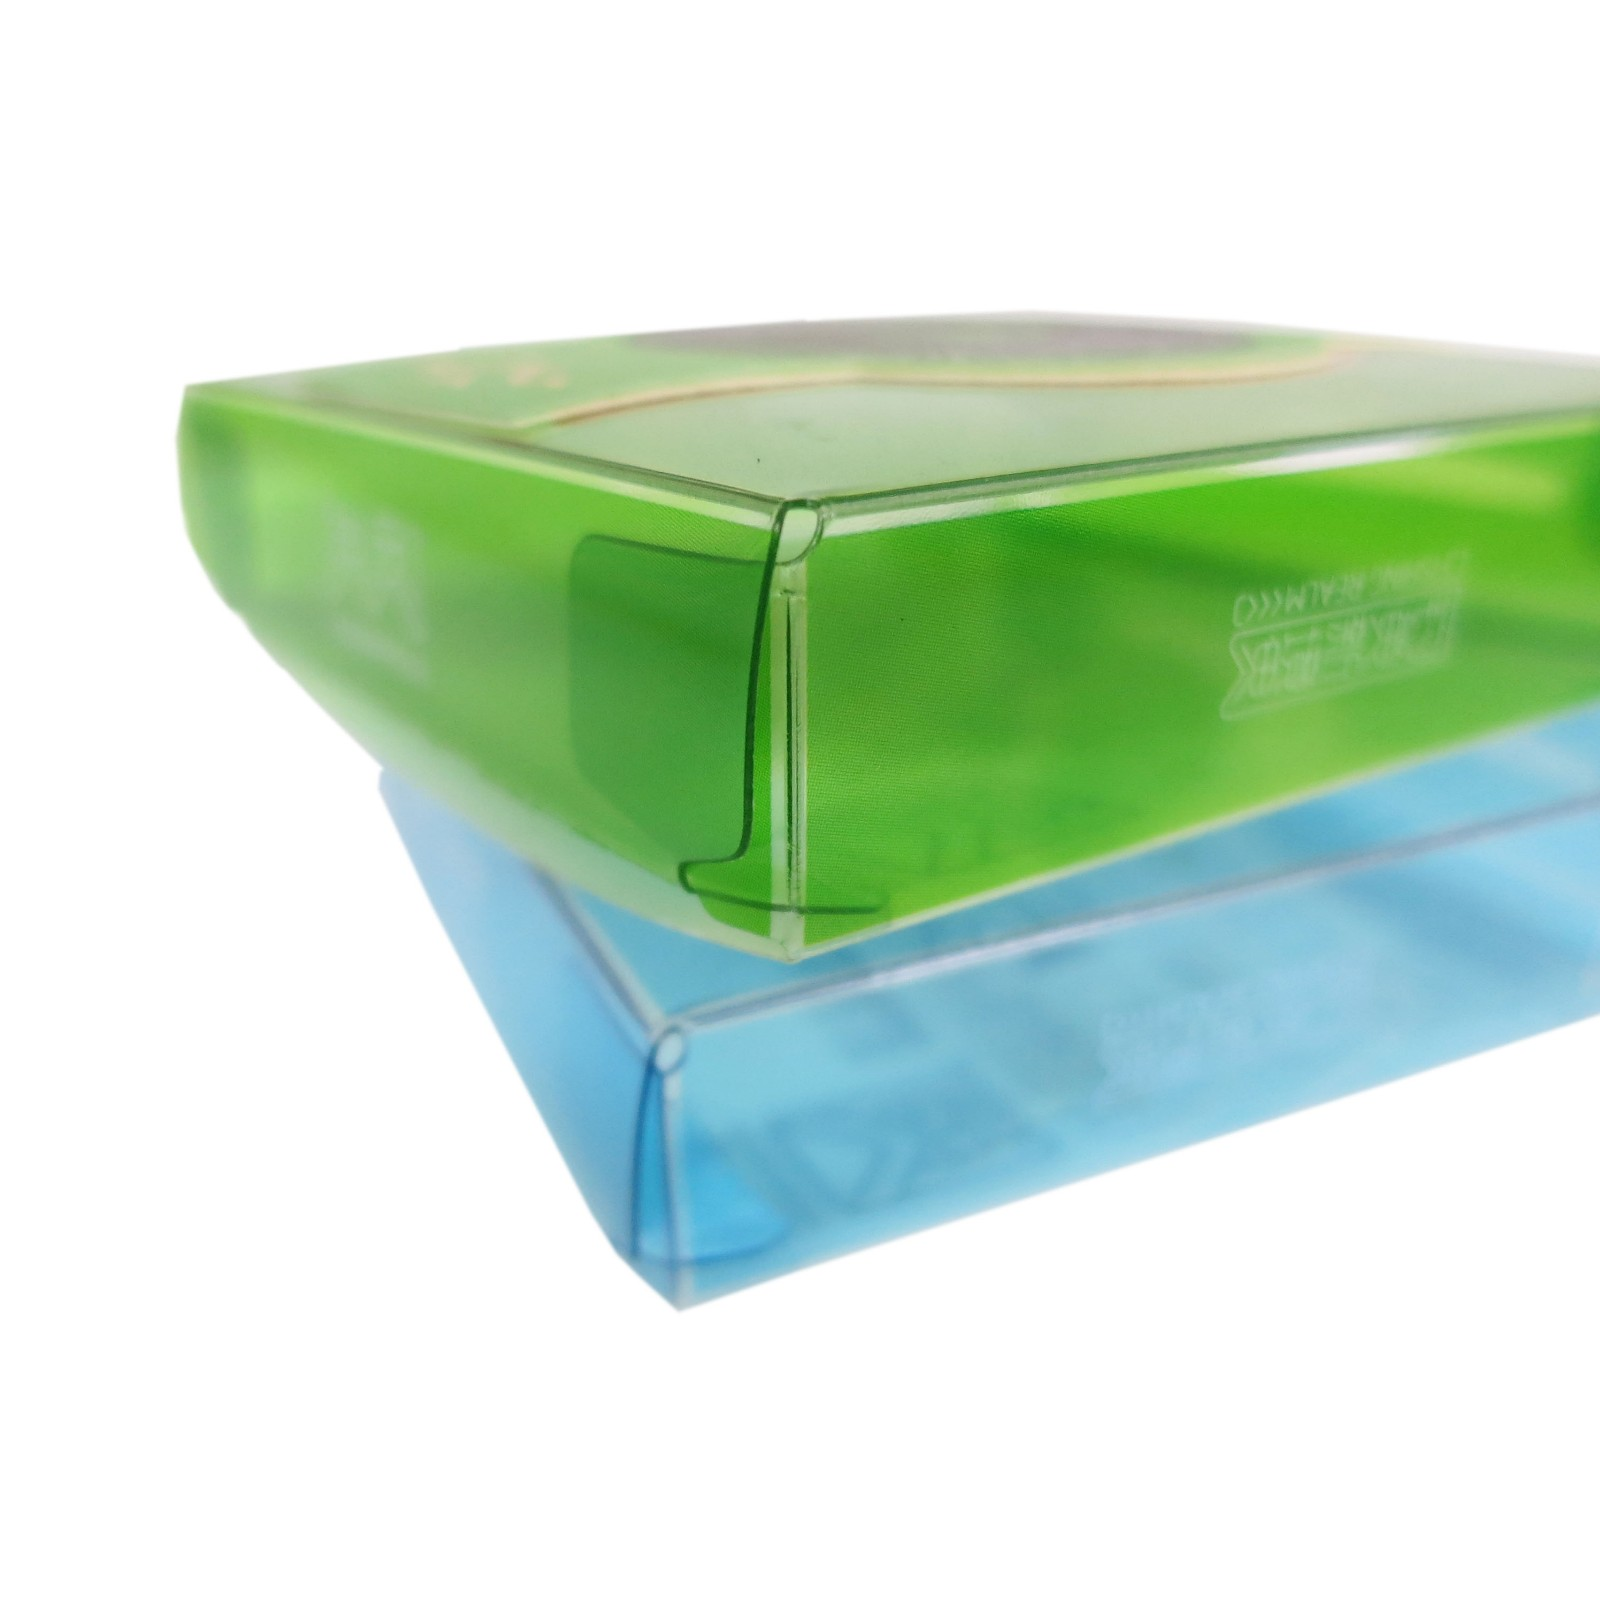 quality plastic box packaging cartoon order now for gifts-4